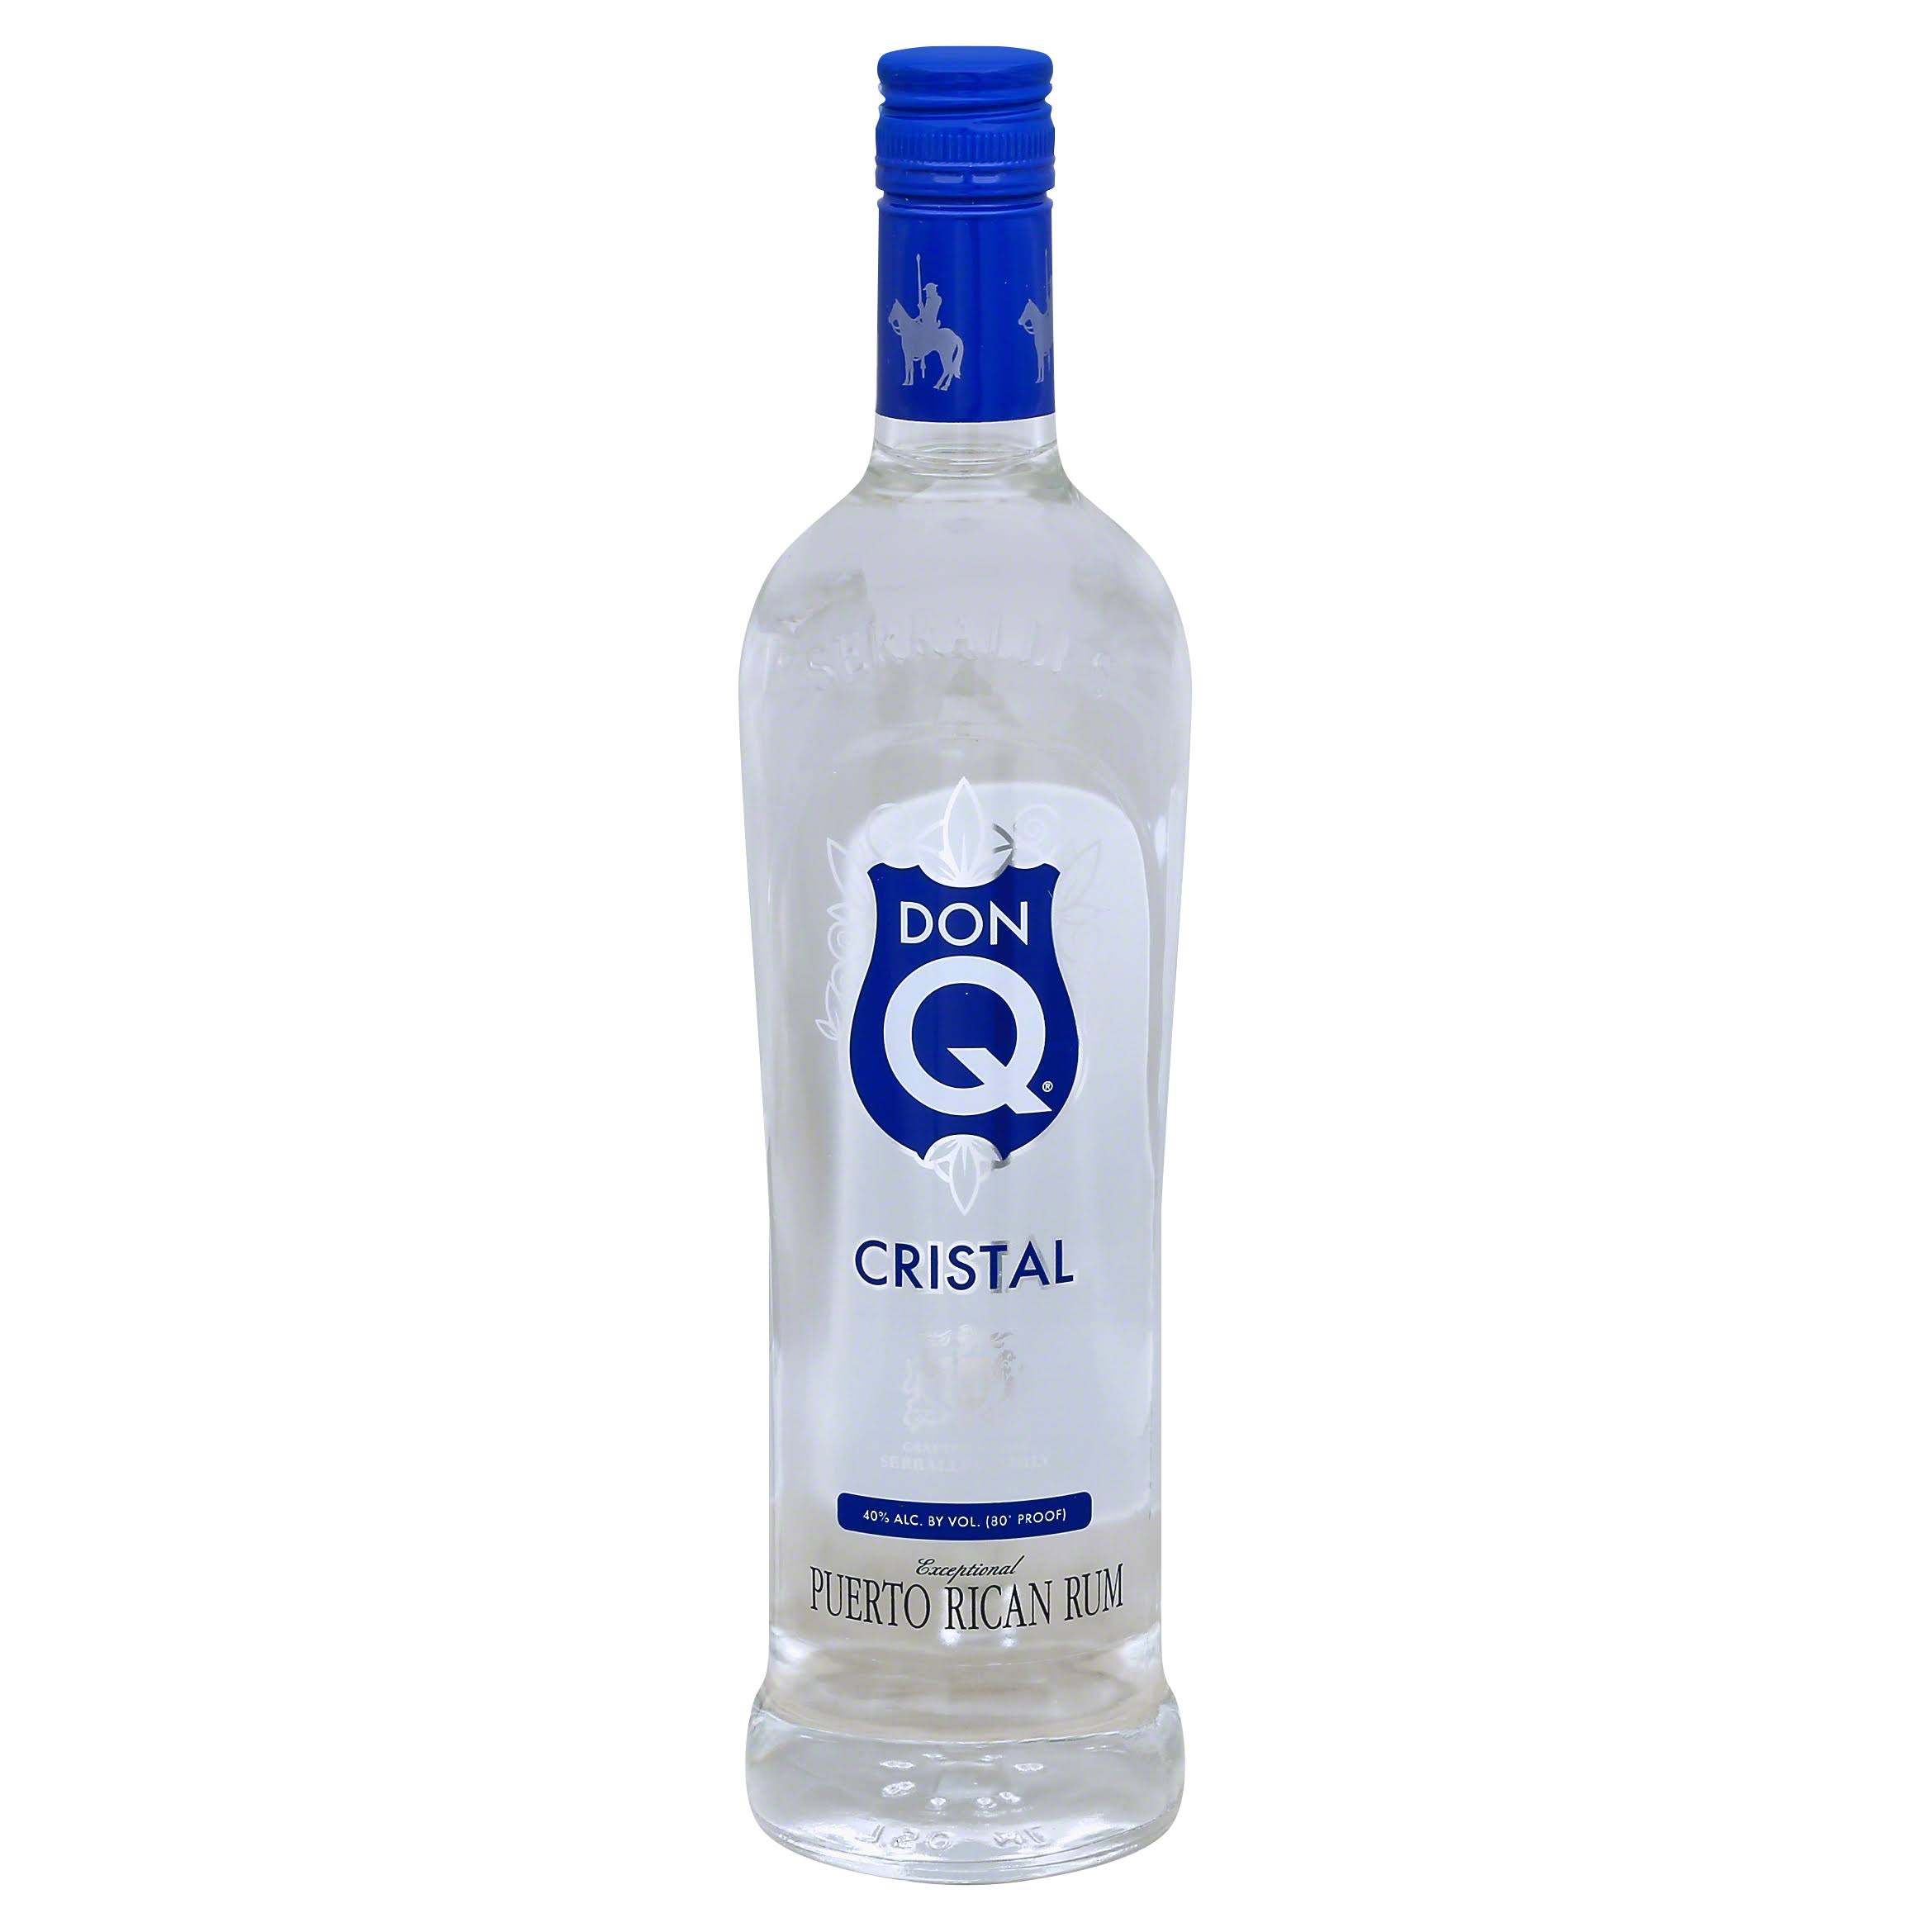 Serralles Don Q Cristal Rum - 750 ml bottle